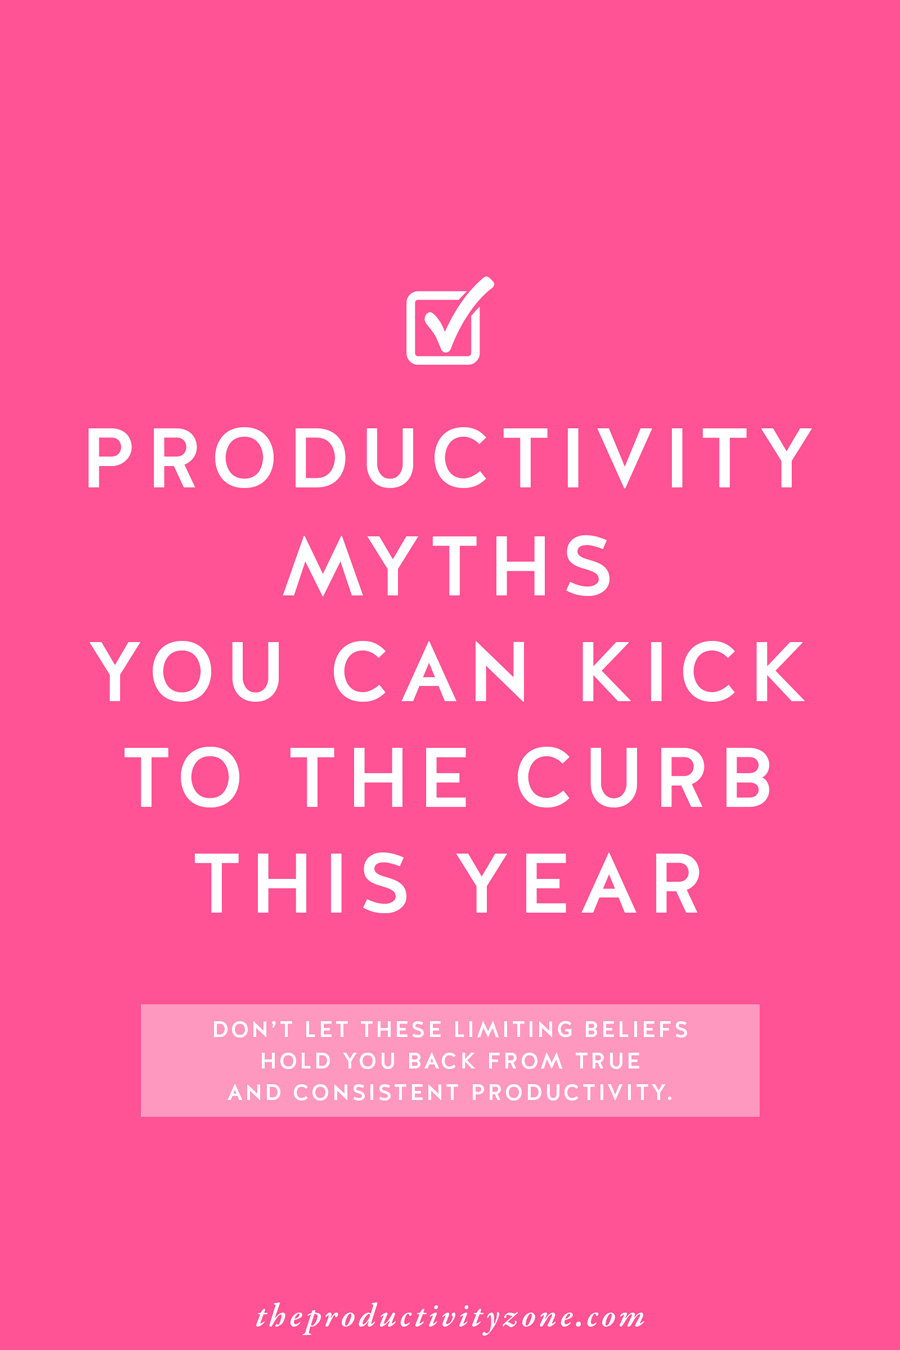 Productivity myths are actually limiting beliefs holding you back from true and consistent productivity. Here are 5 you can kick to the curb for good!!